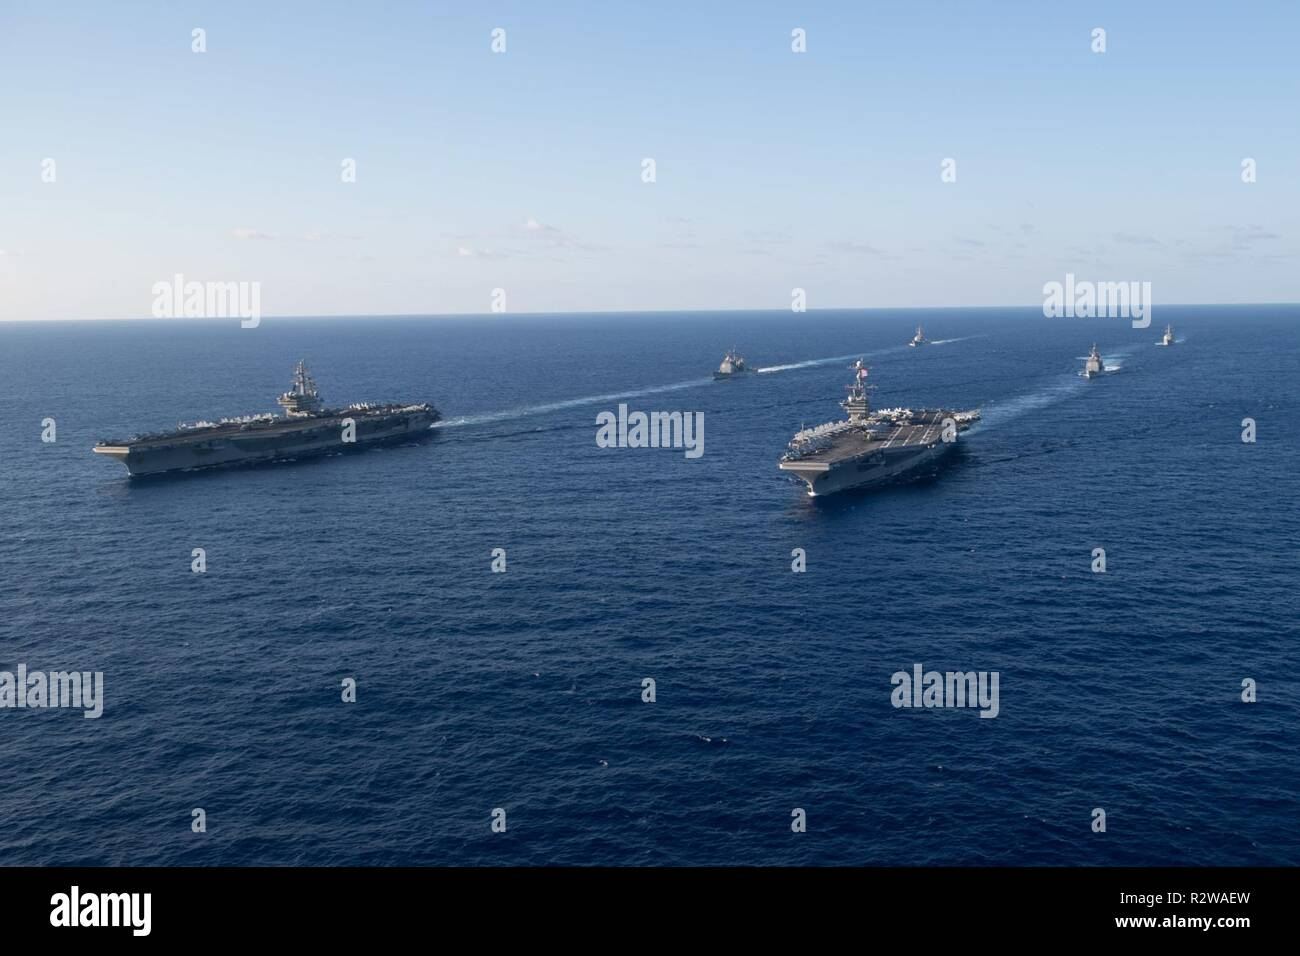 Uss Stennis Stock Photos & Uss Stennis Stock Images - Page